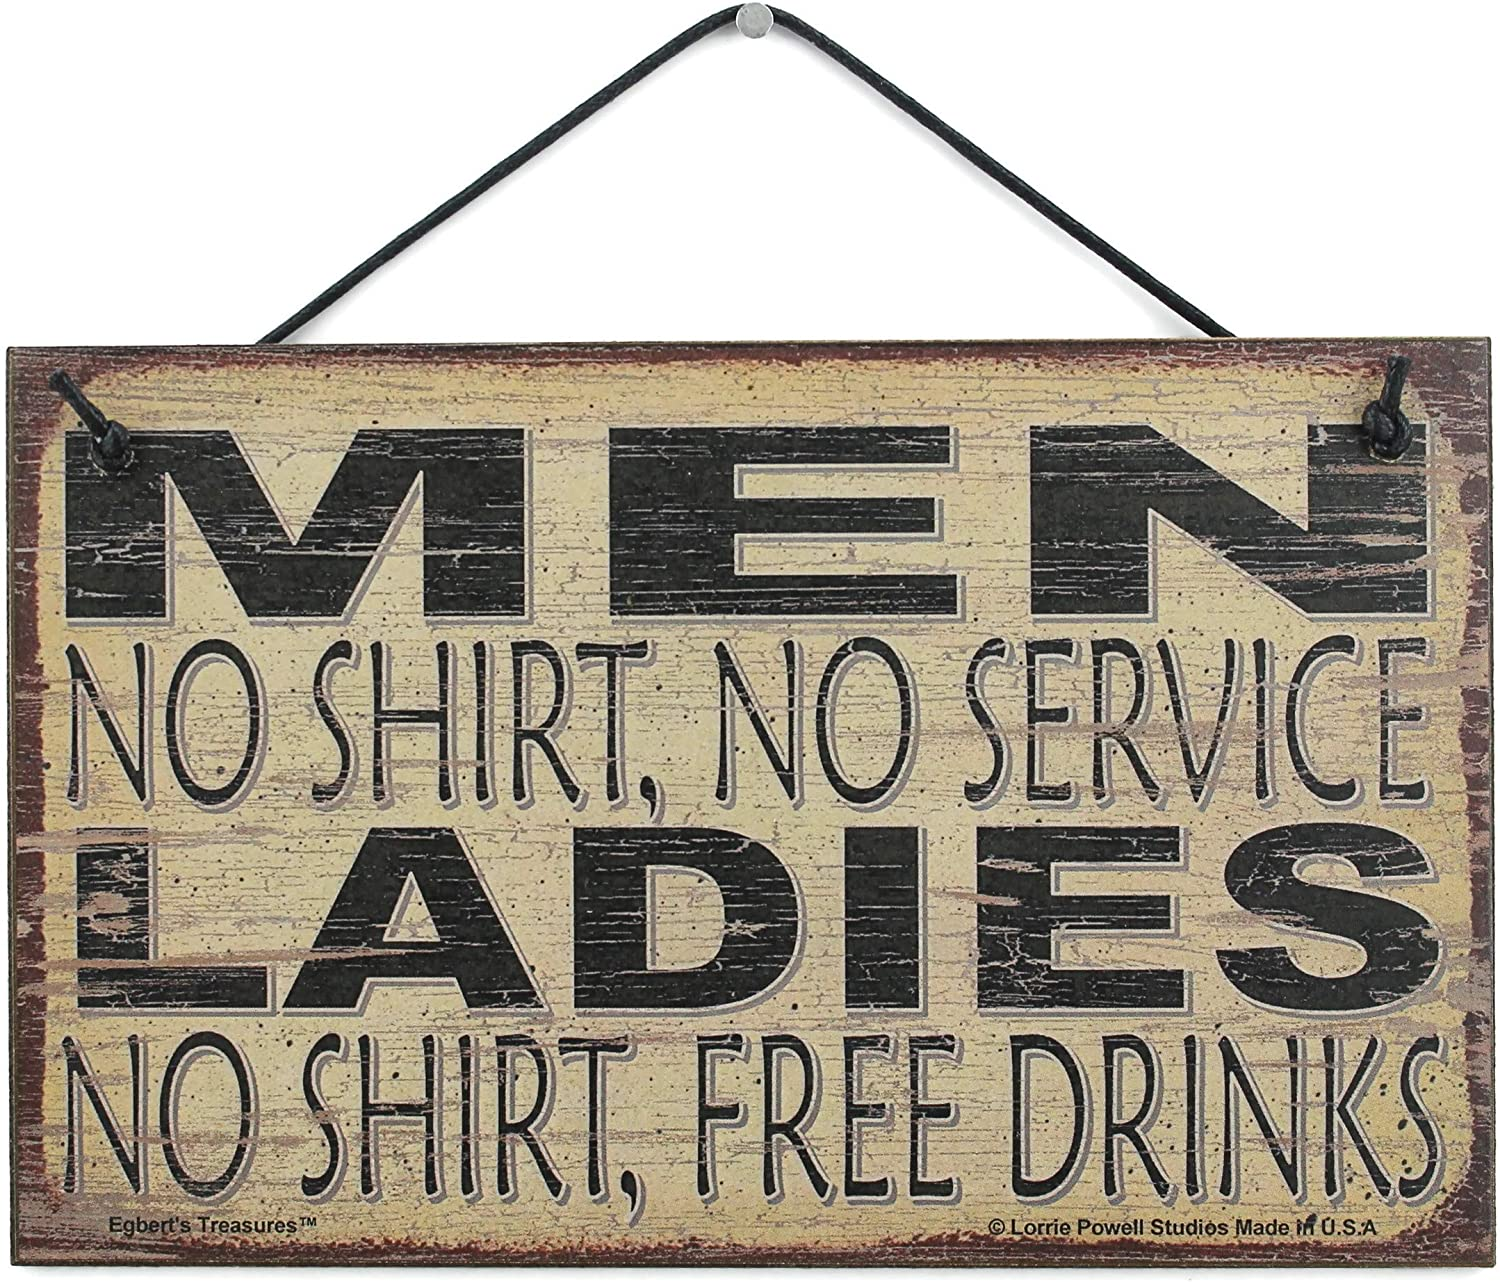 Egbert's Treasures 5x8 Vintage Style Sign Saying, Men No Shirt, No Service Ladies No Shirt, Free Drinks Decorative Fun Universal Household Signs from